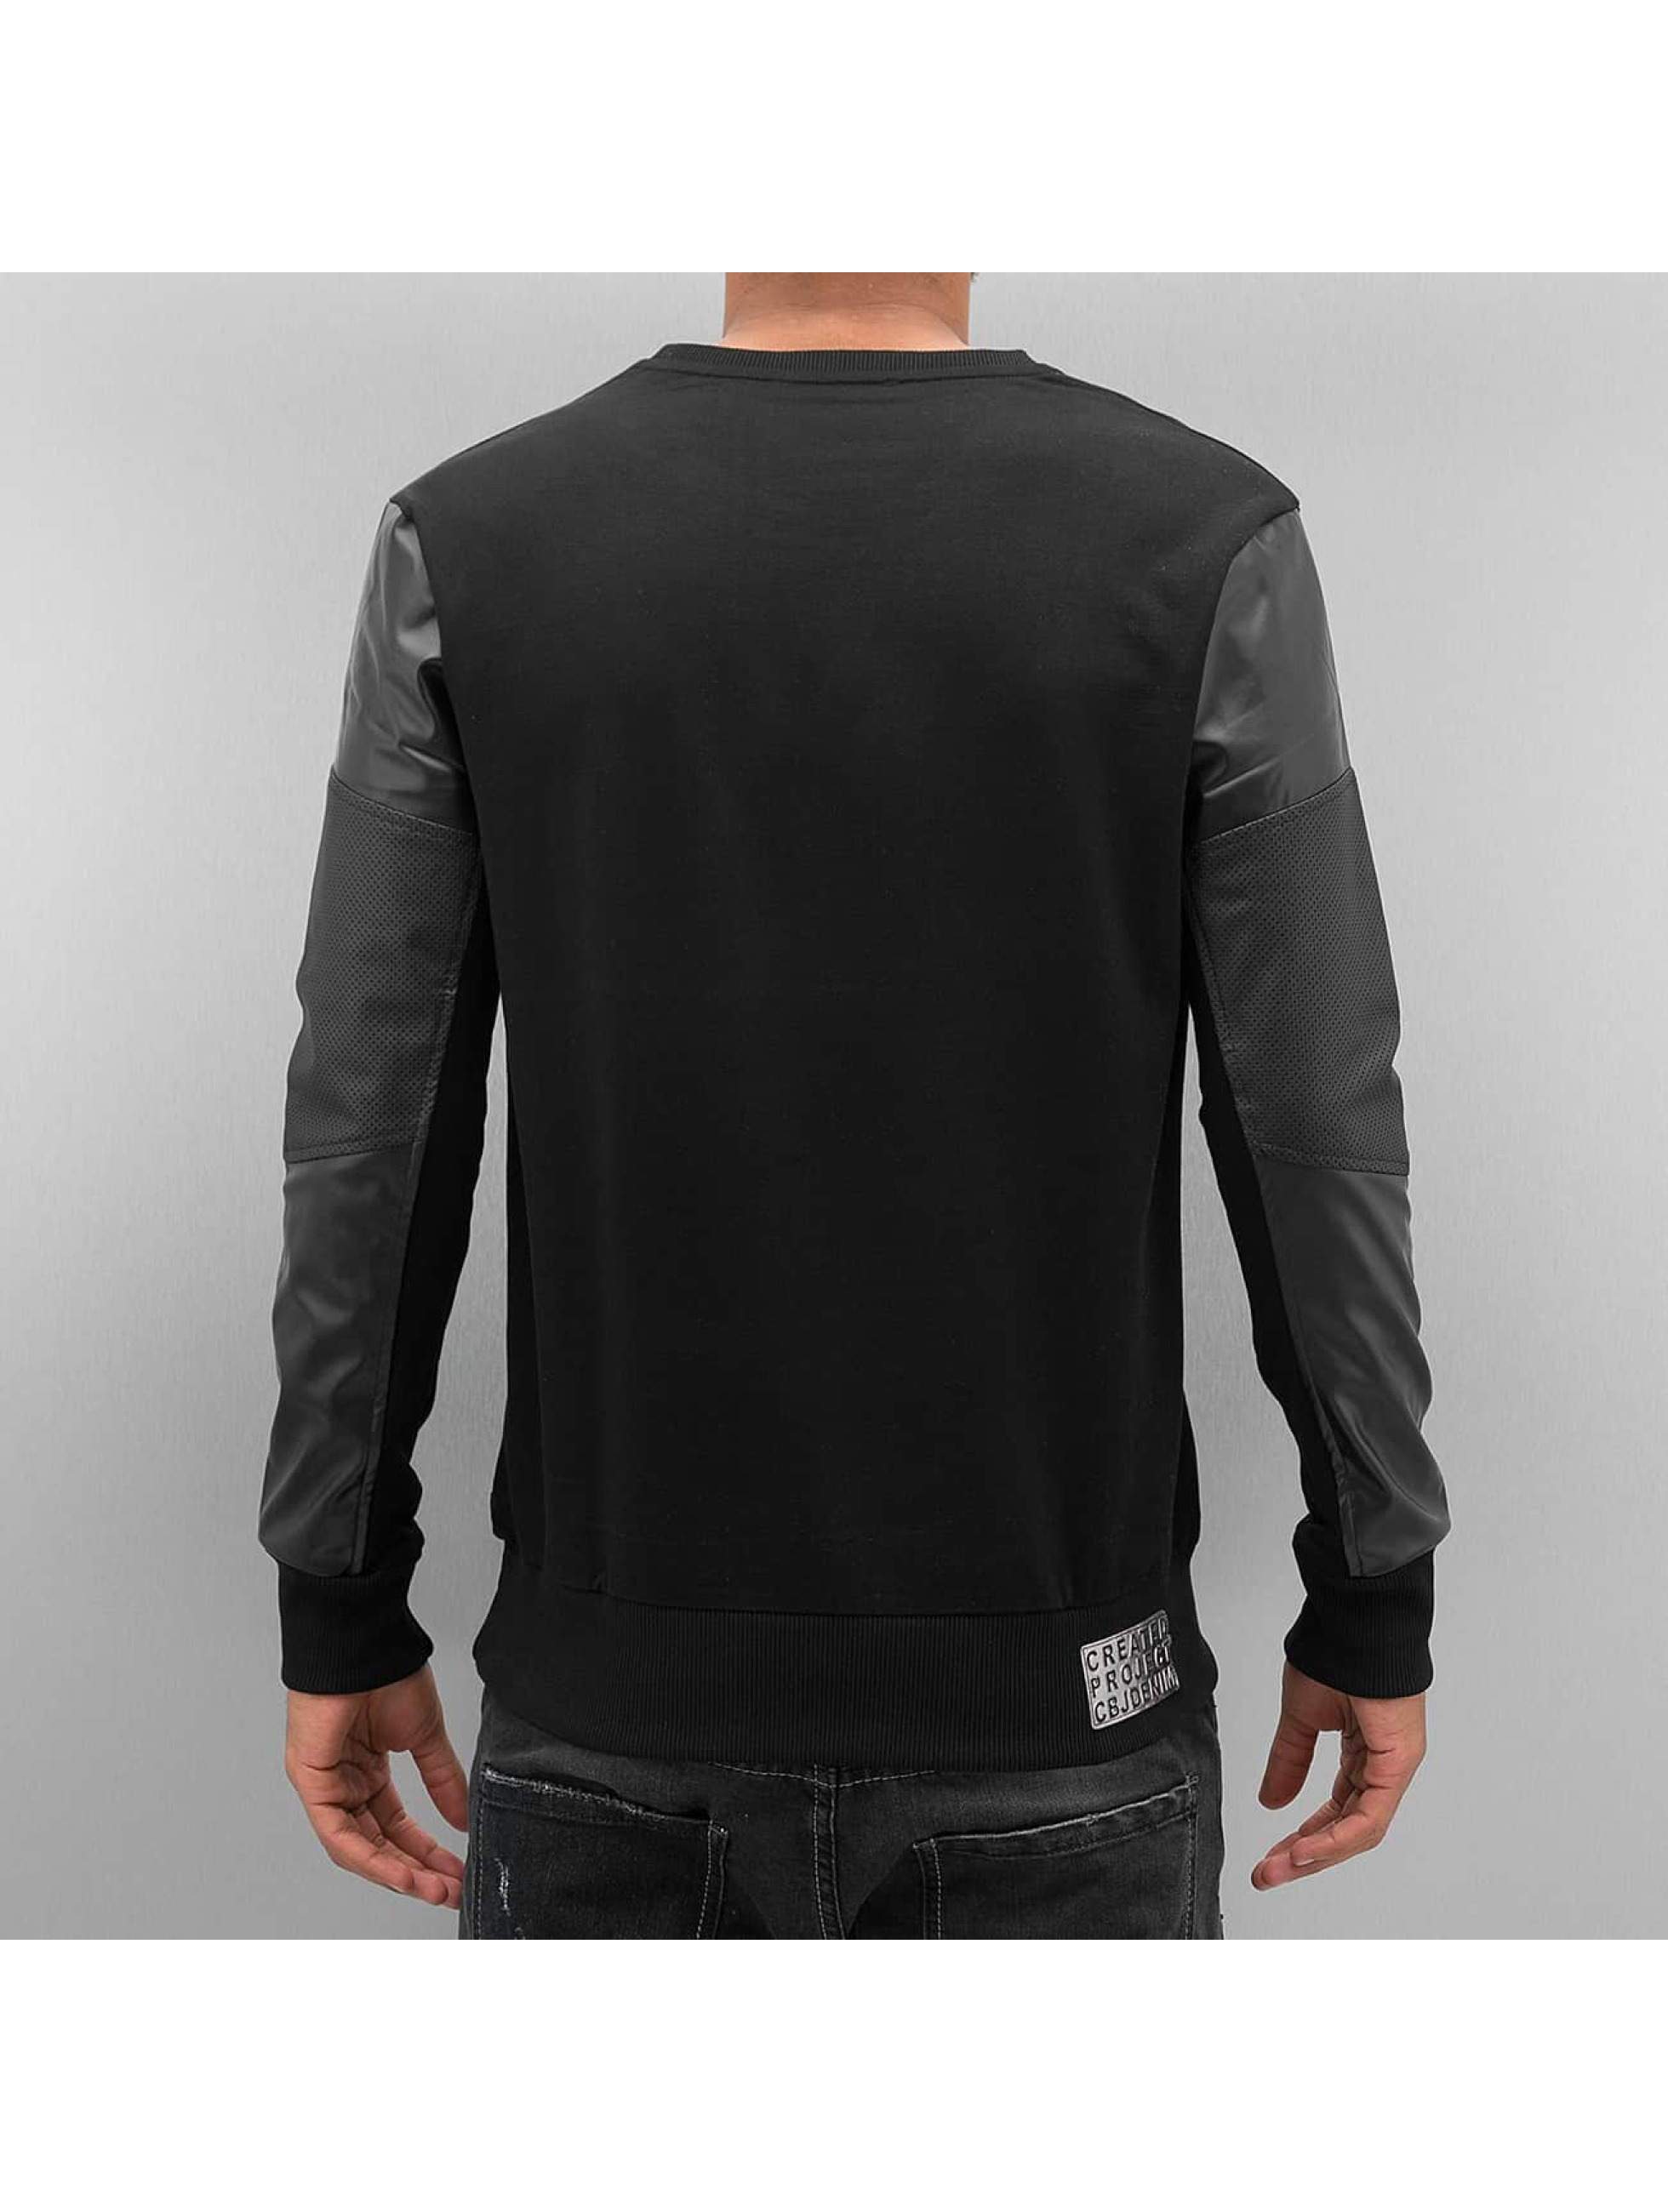 Cipo & Baxx Pullover Fake Leather schwarz